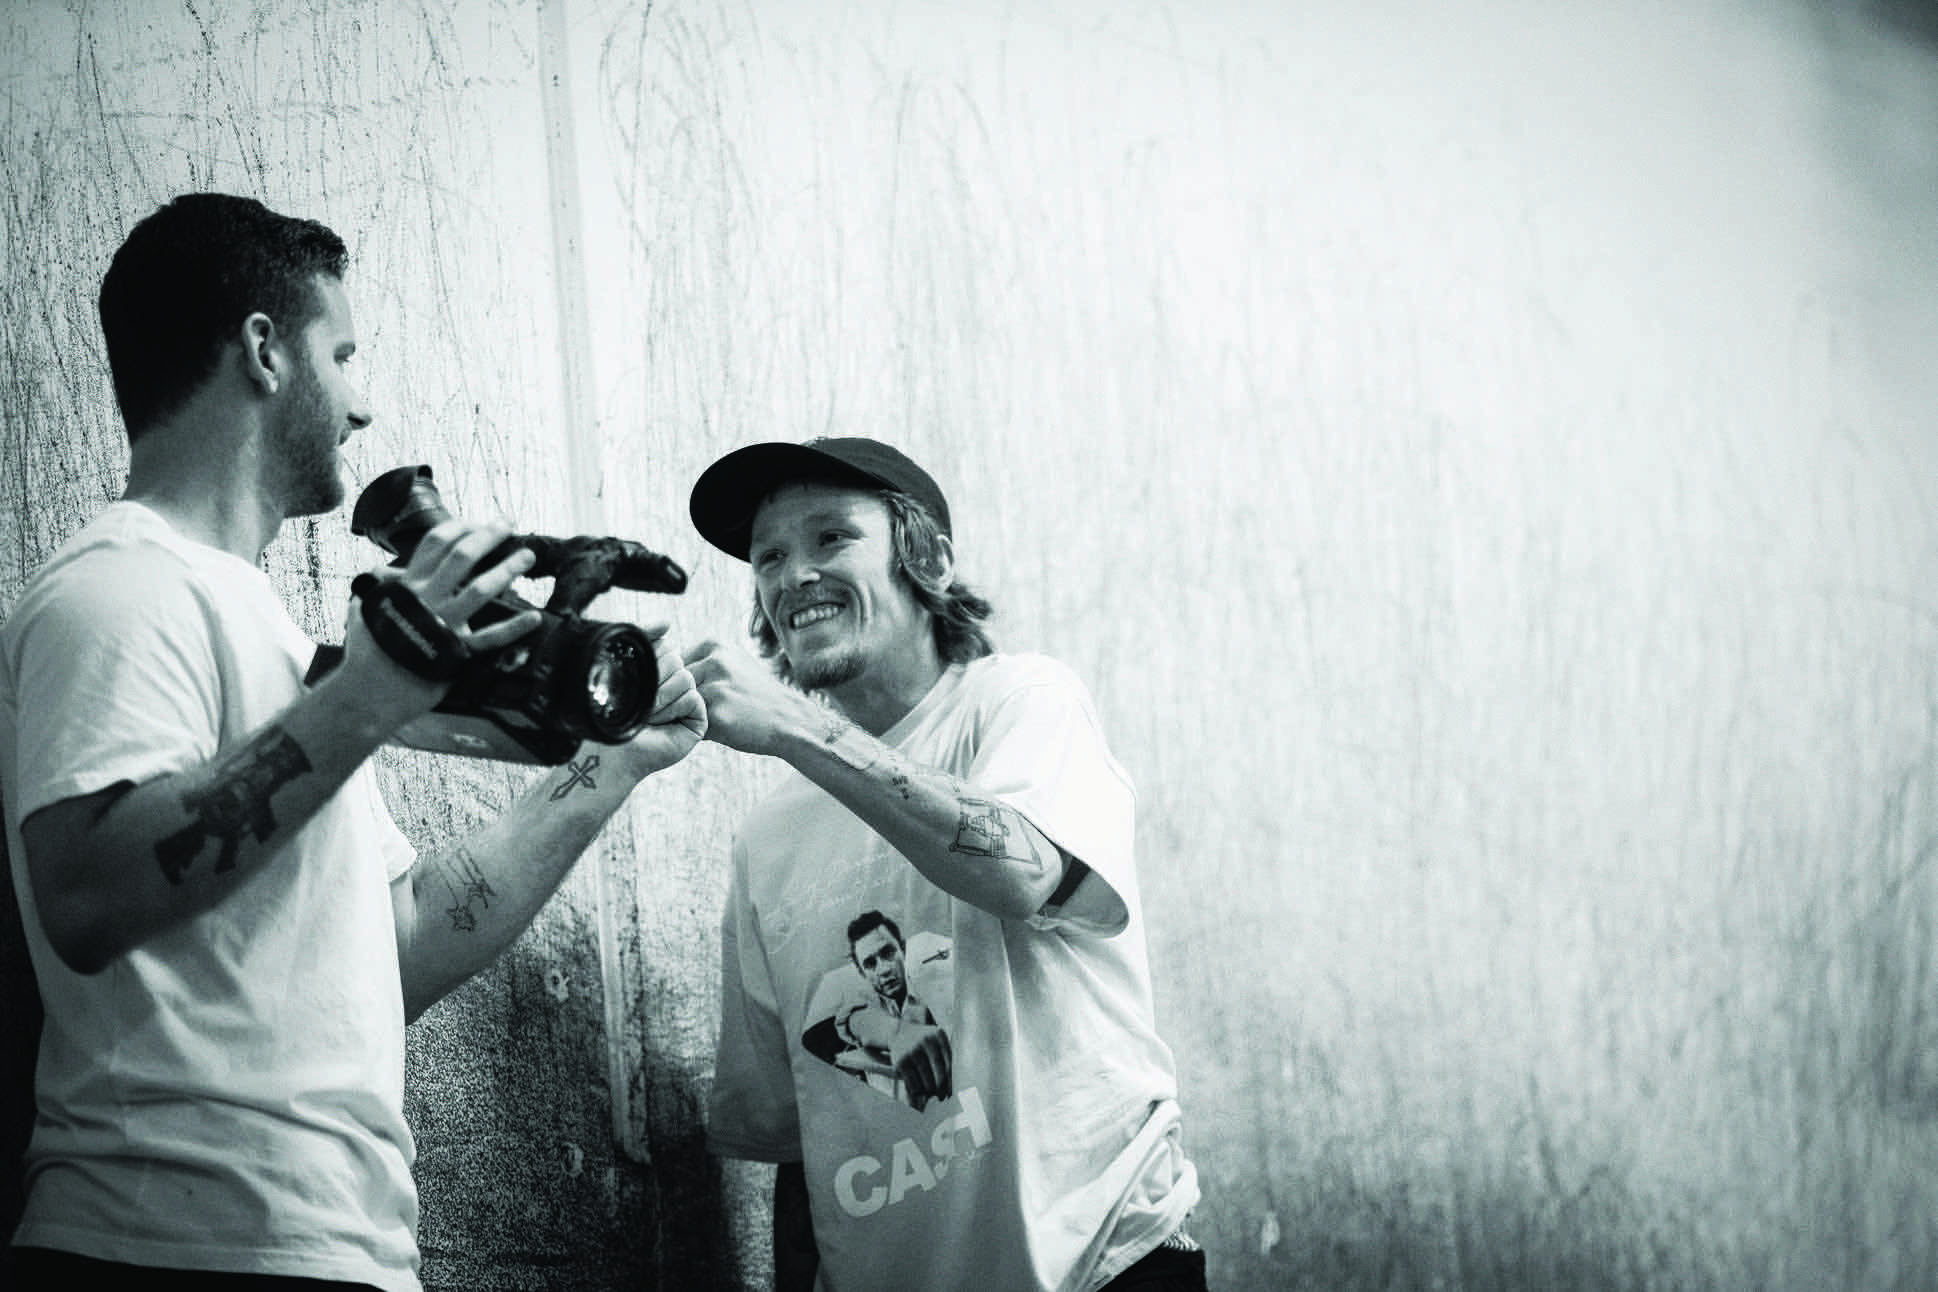 JORDAN MAXHAM INTERVIEW -- Popping Out On The Blind Side